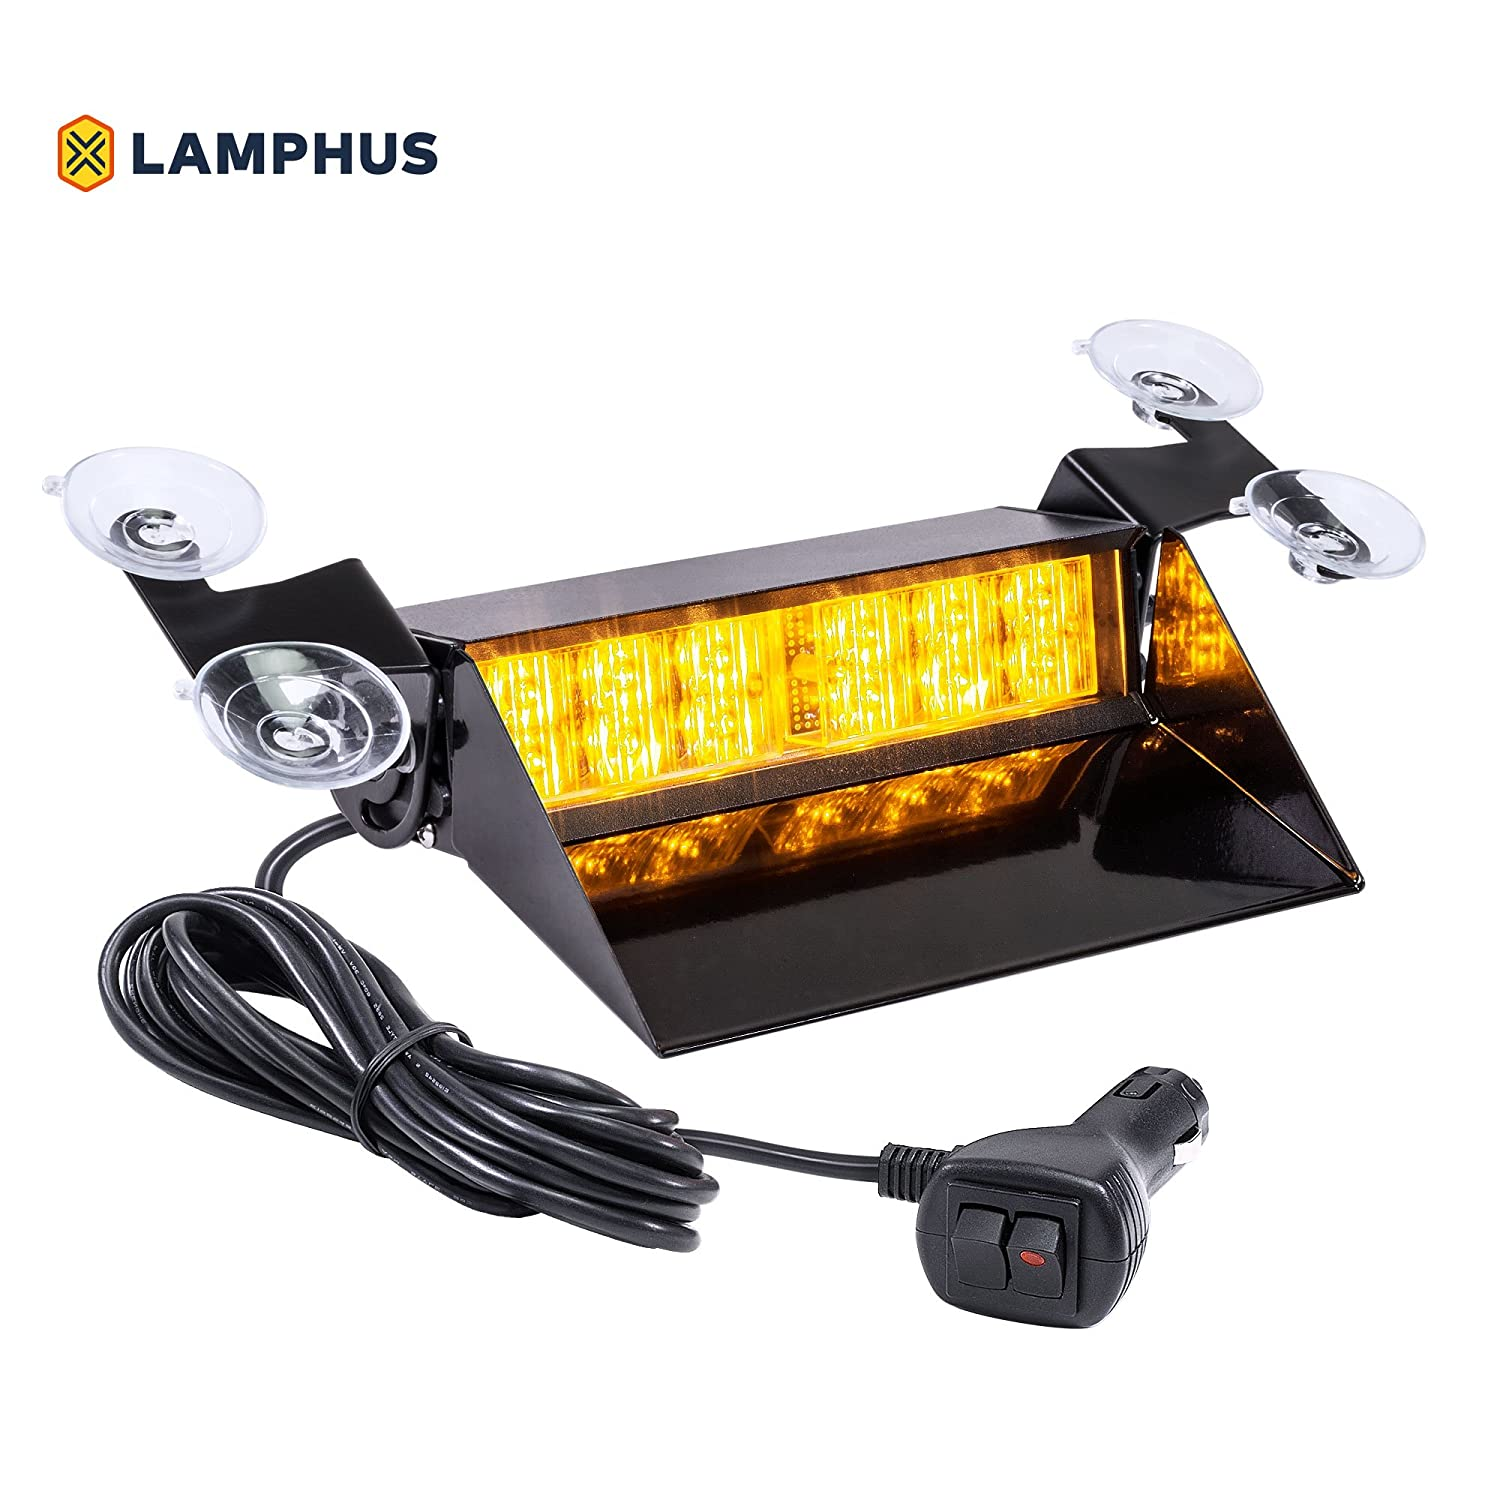 LAMPHUS SolarBlast SBWL26 Emergency Vehicle LED Dash Light [12W LED] [32 Flash Patterns] [Adjustable Mounting] [Multiple Colors Available] - Strobe Light for Dash, Deck & Windshield - Amber